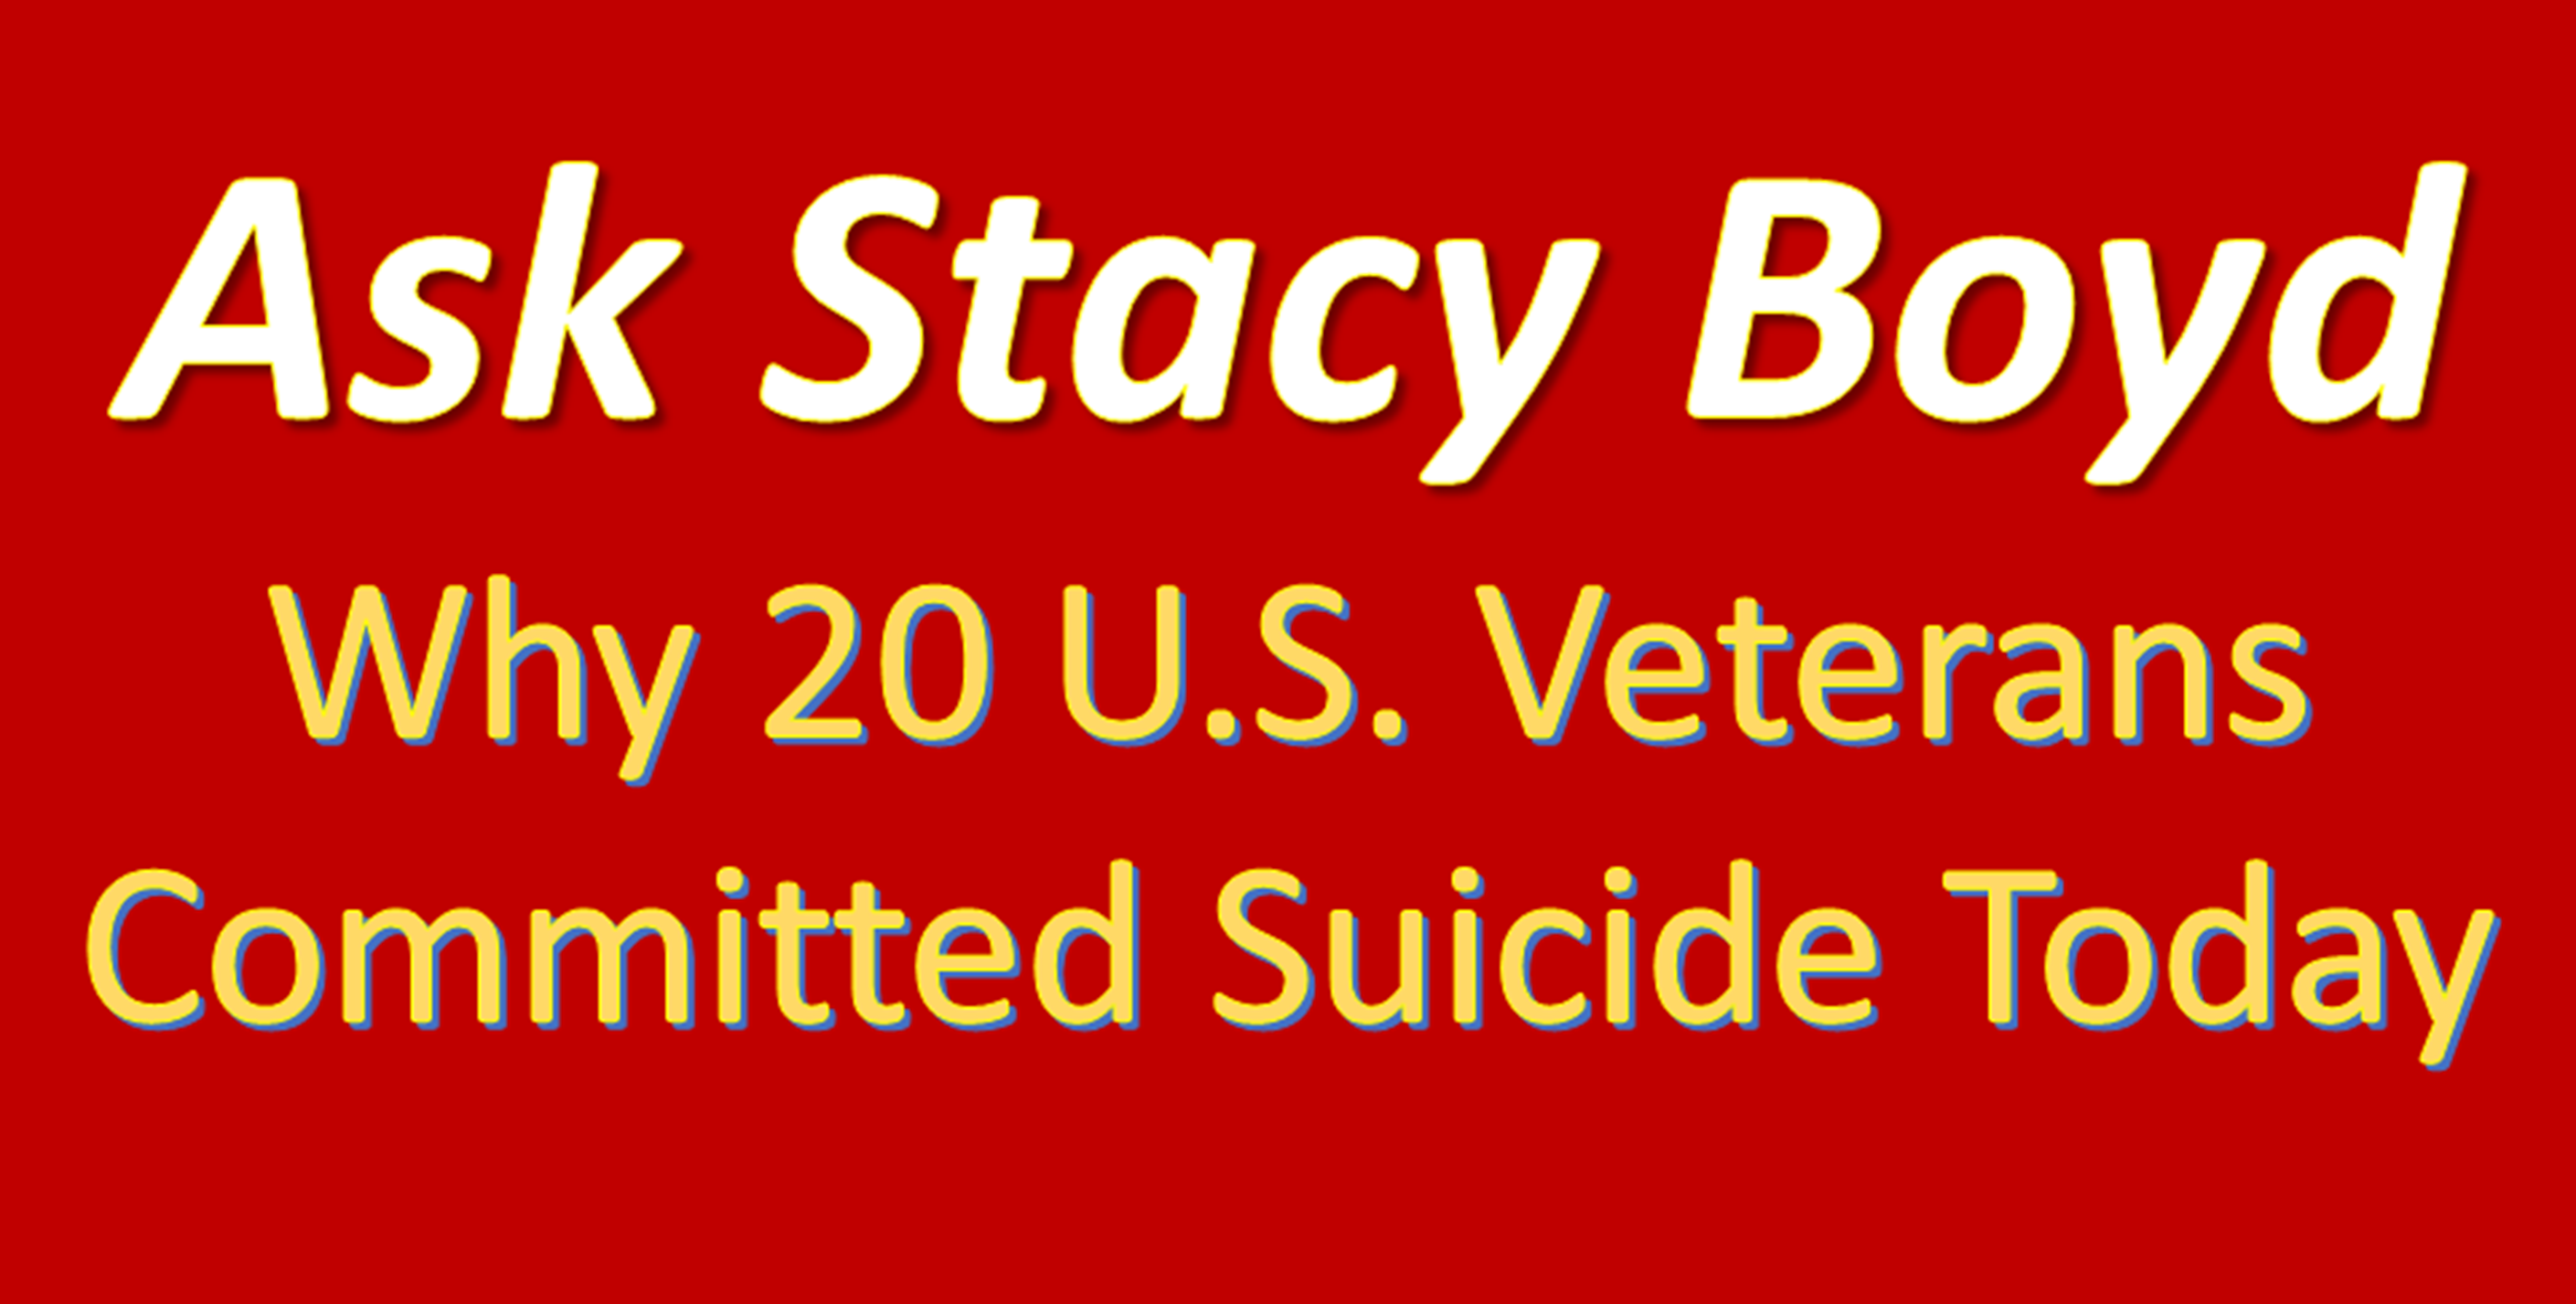 Ask Stacy Boyd - Veterans Suicide